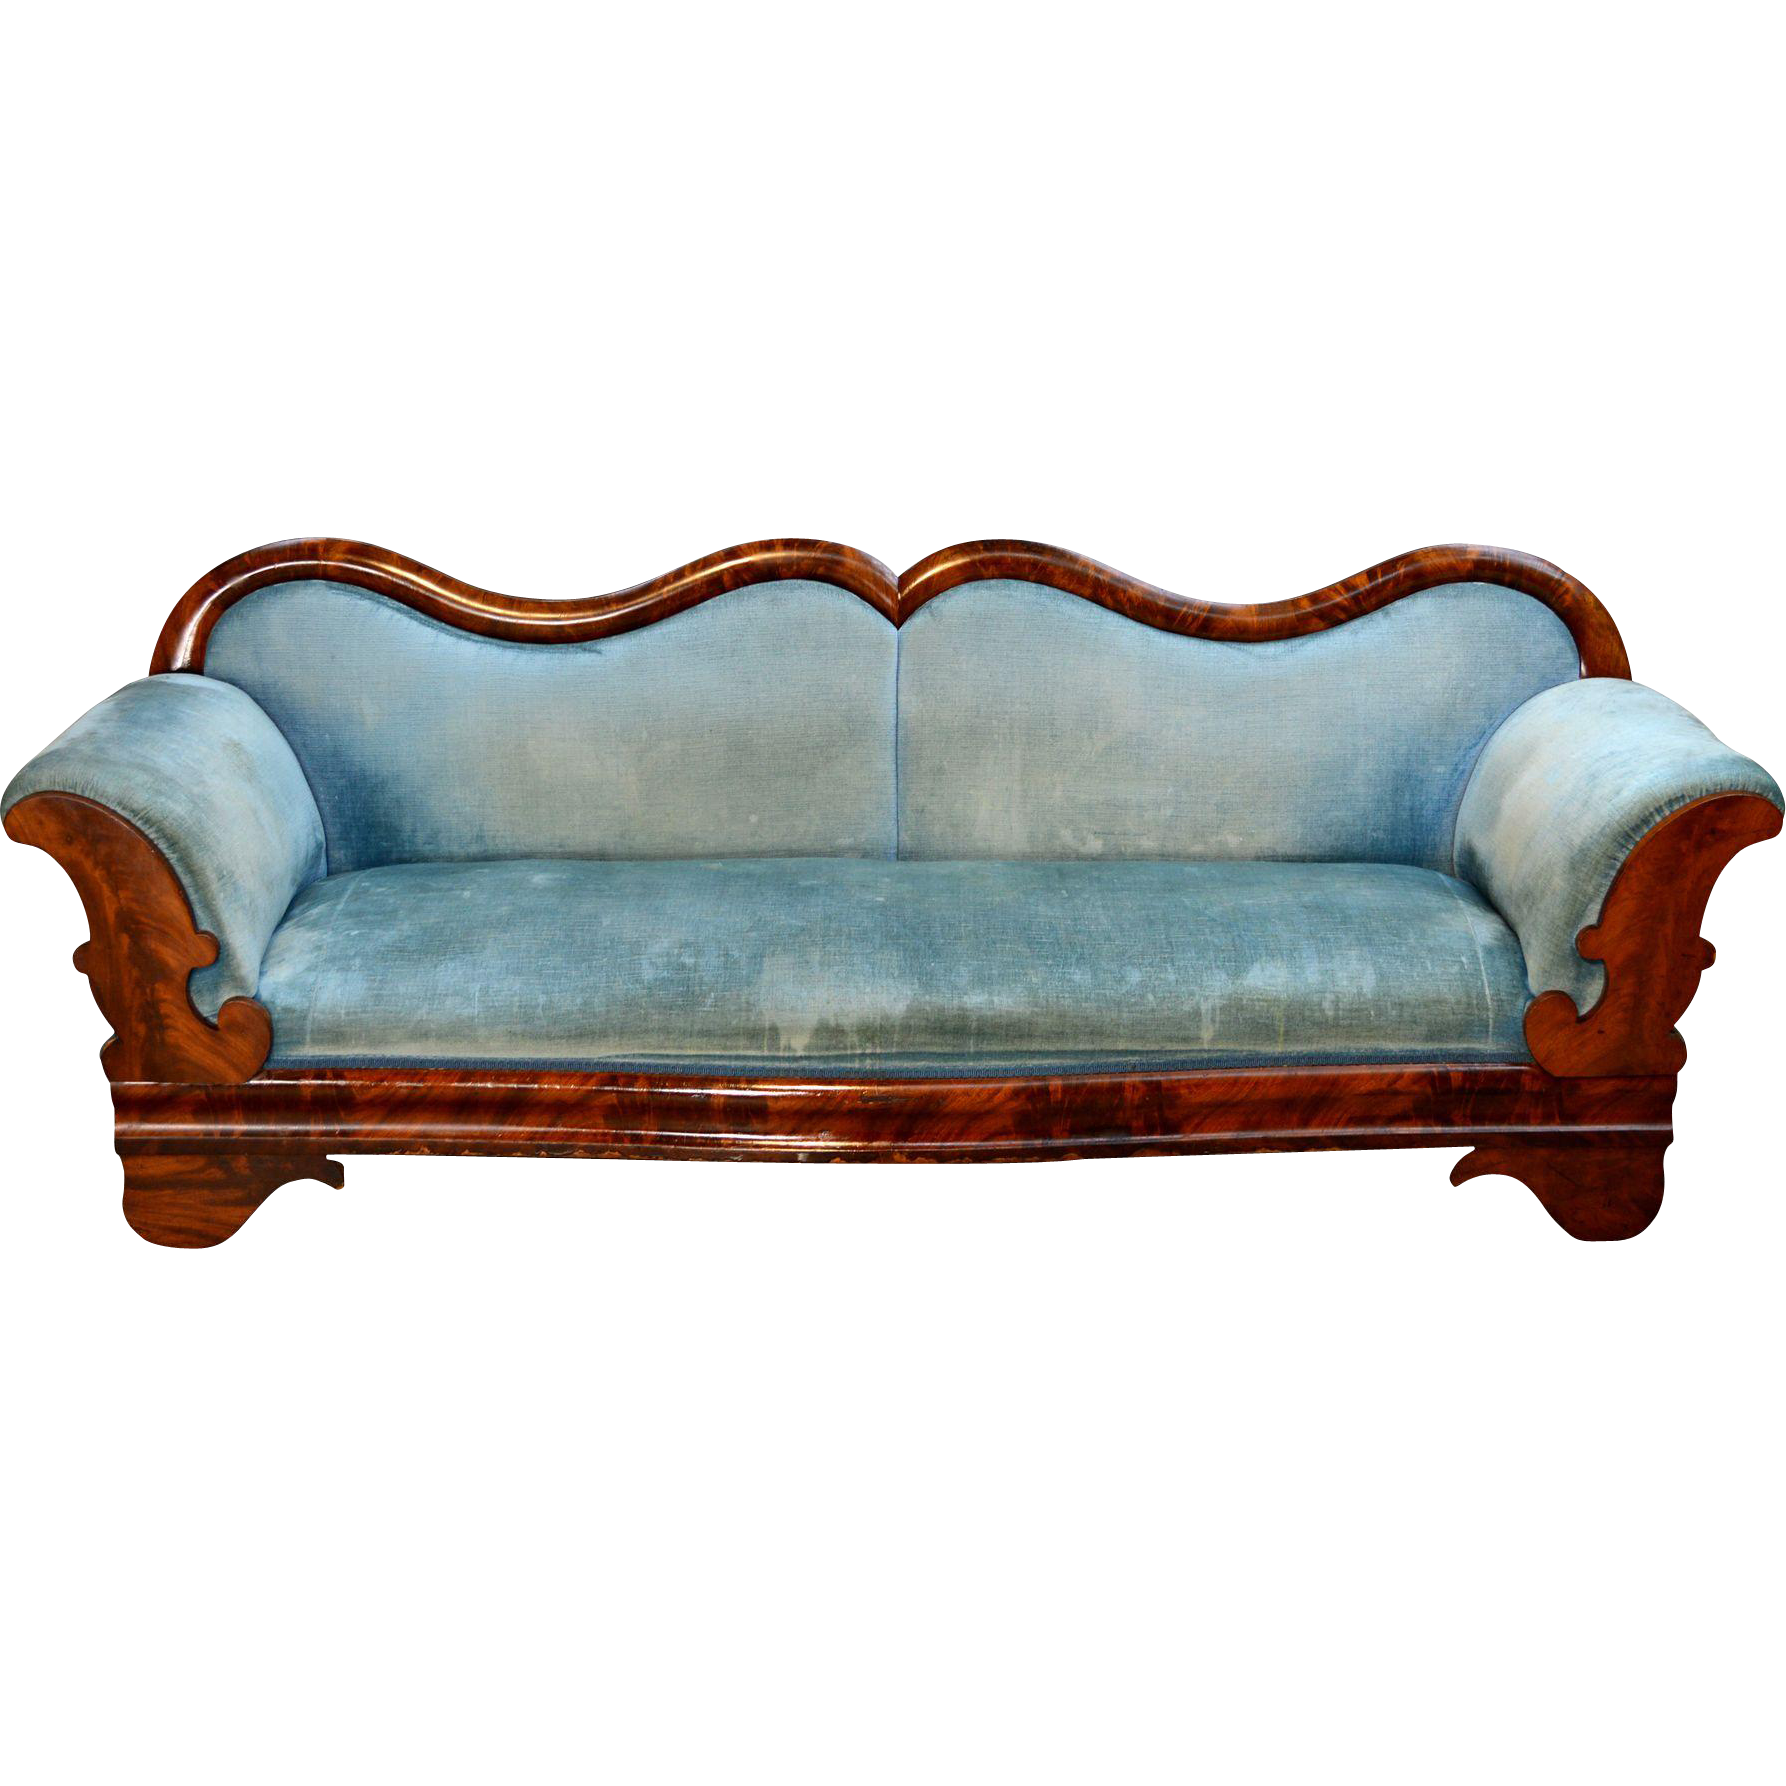 Antique Period Civil War Era Mahogany Empire Sofa from